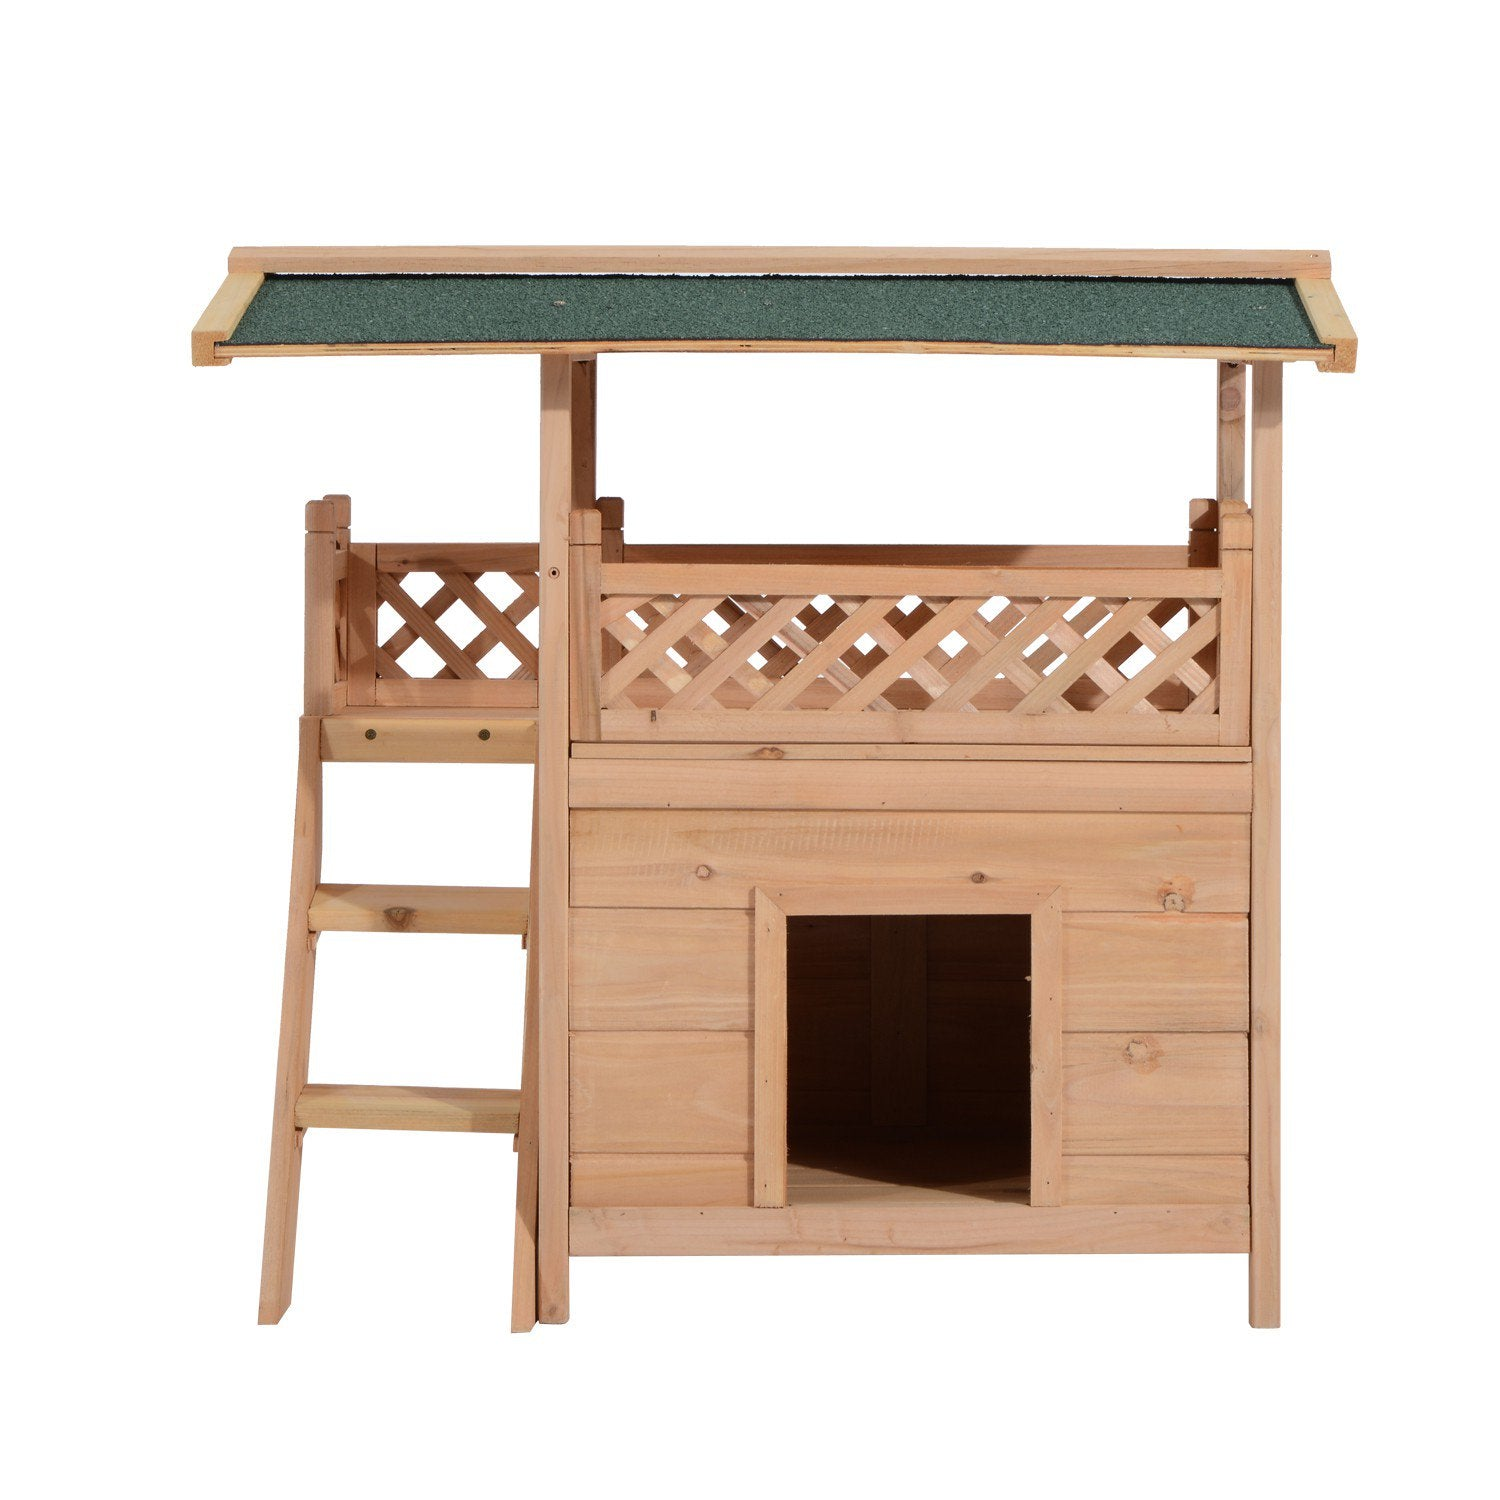 Wood House Condo Cat Tree Puppy Bed Crate Shelter Play Furniture with Roof Stairs